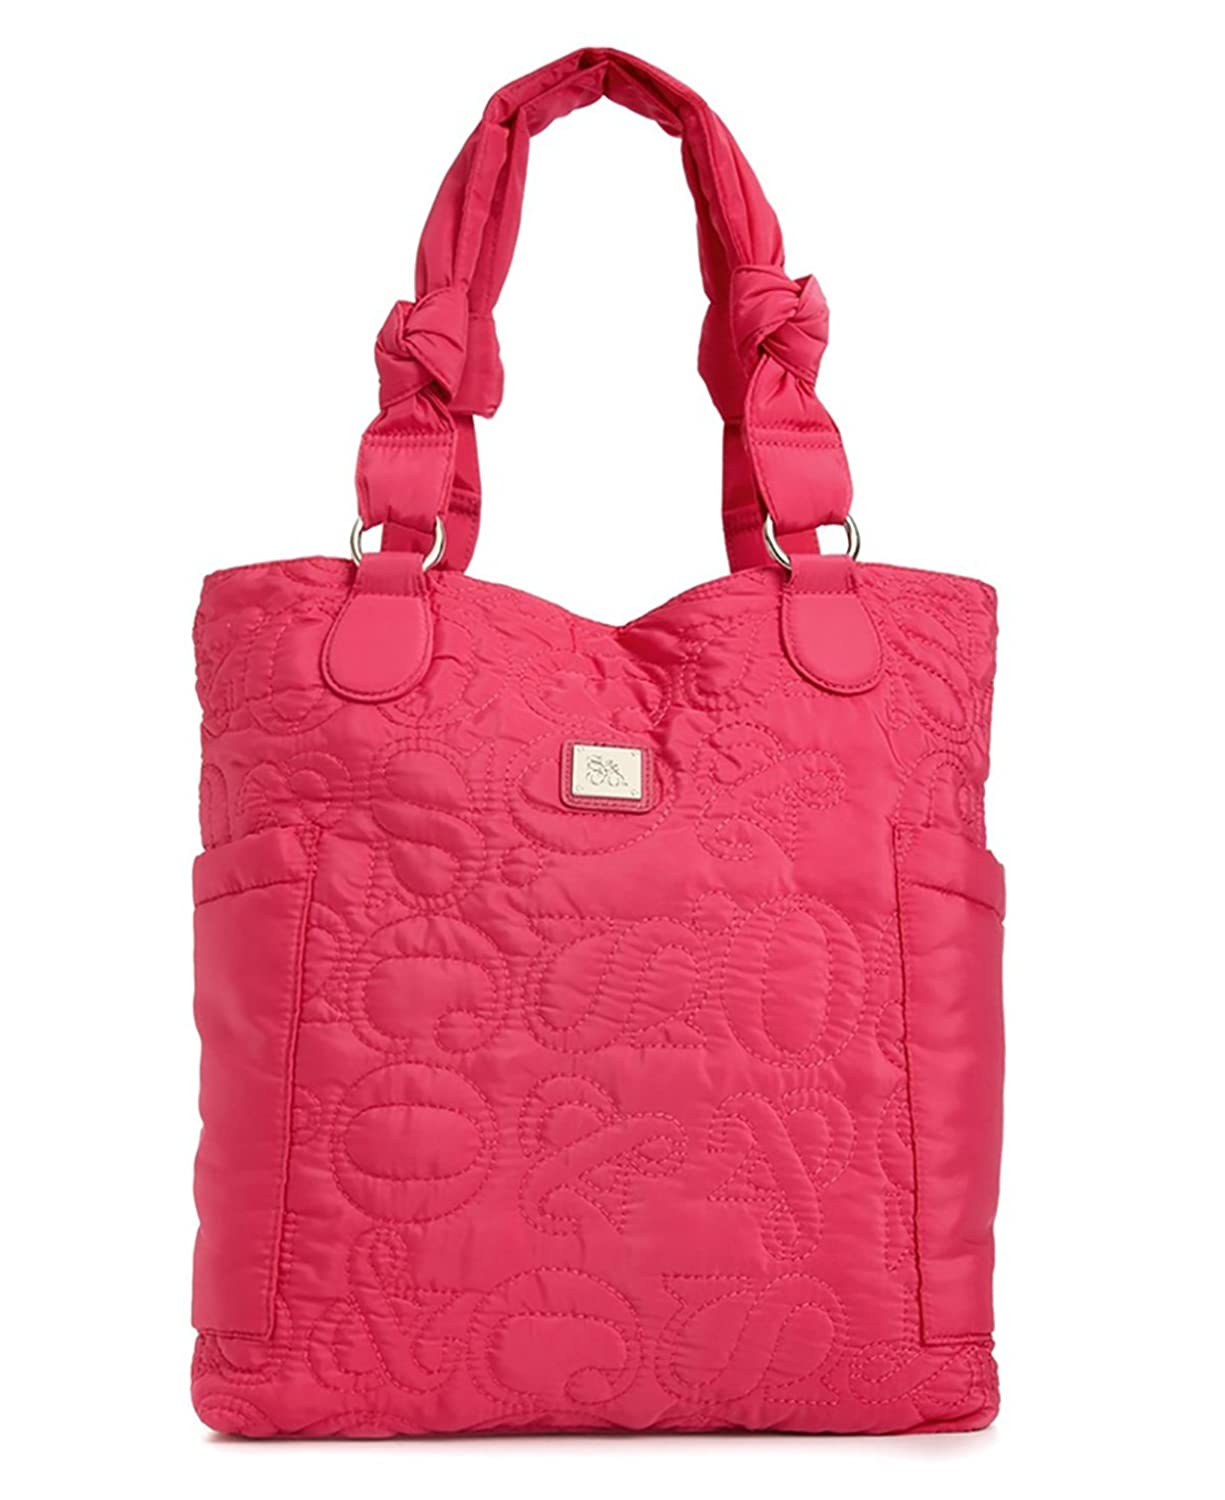 Style&co. Nicole North South Tote Bag, Peony Pink